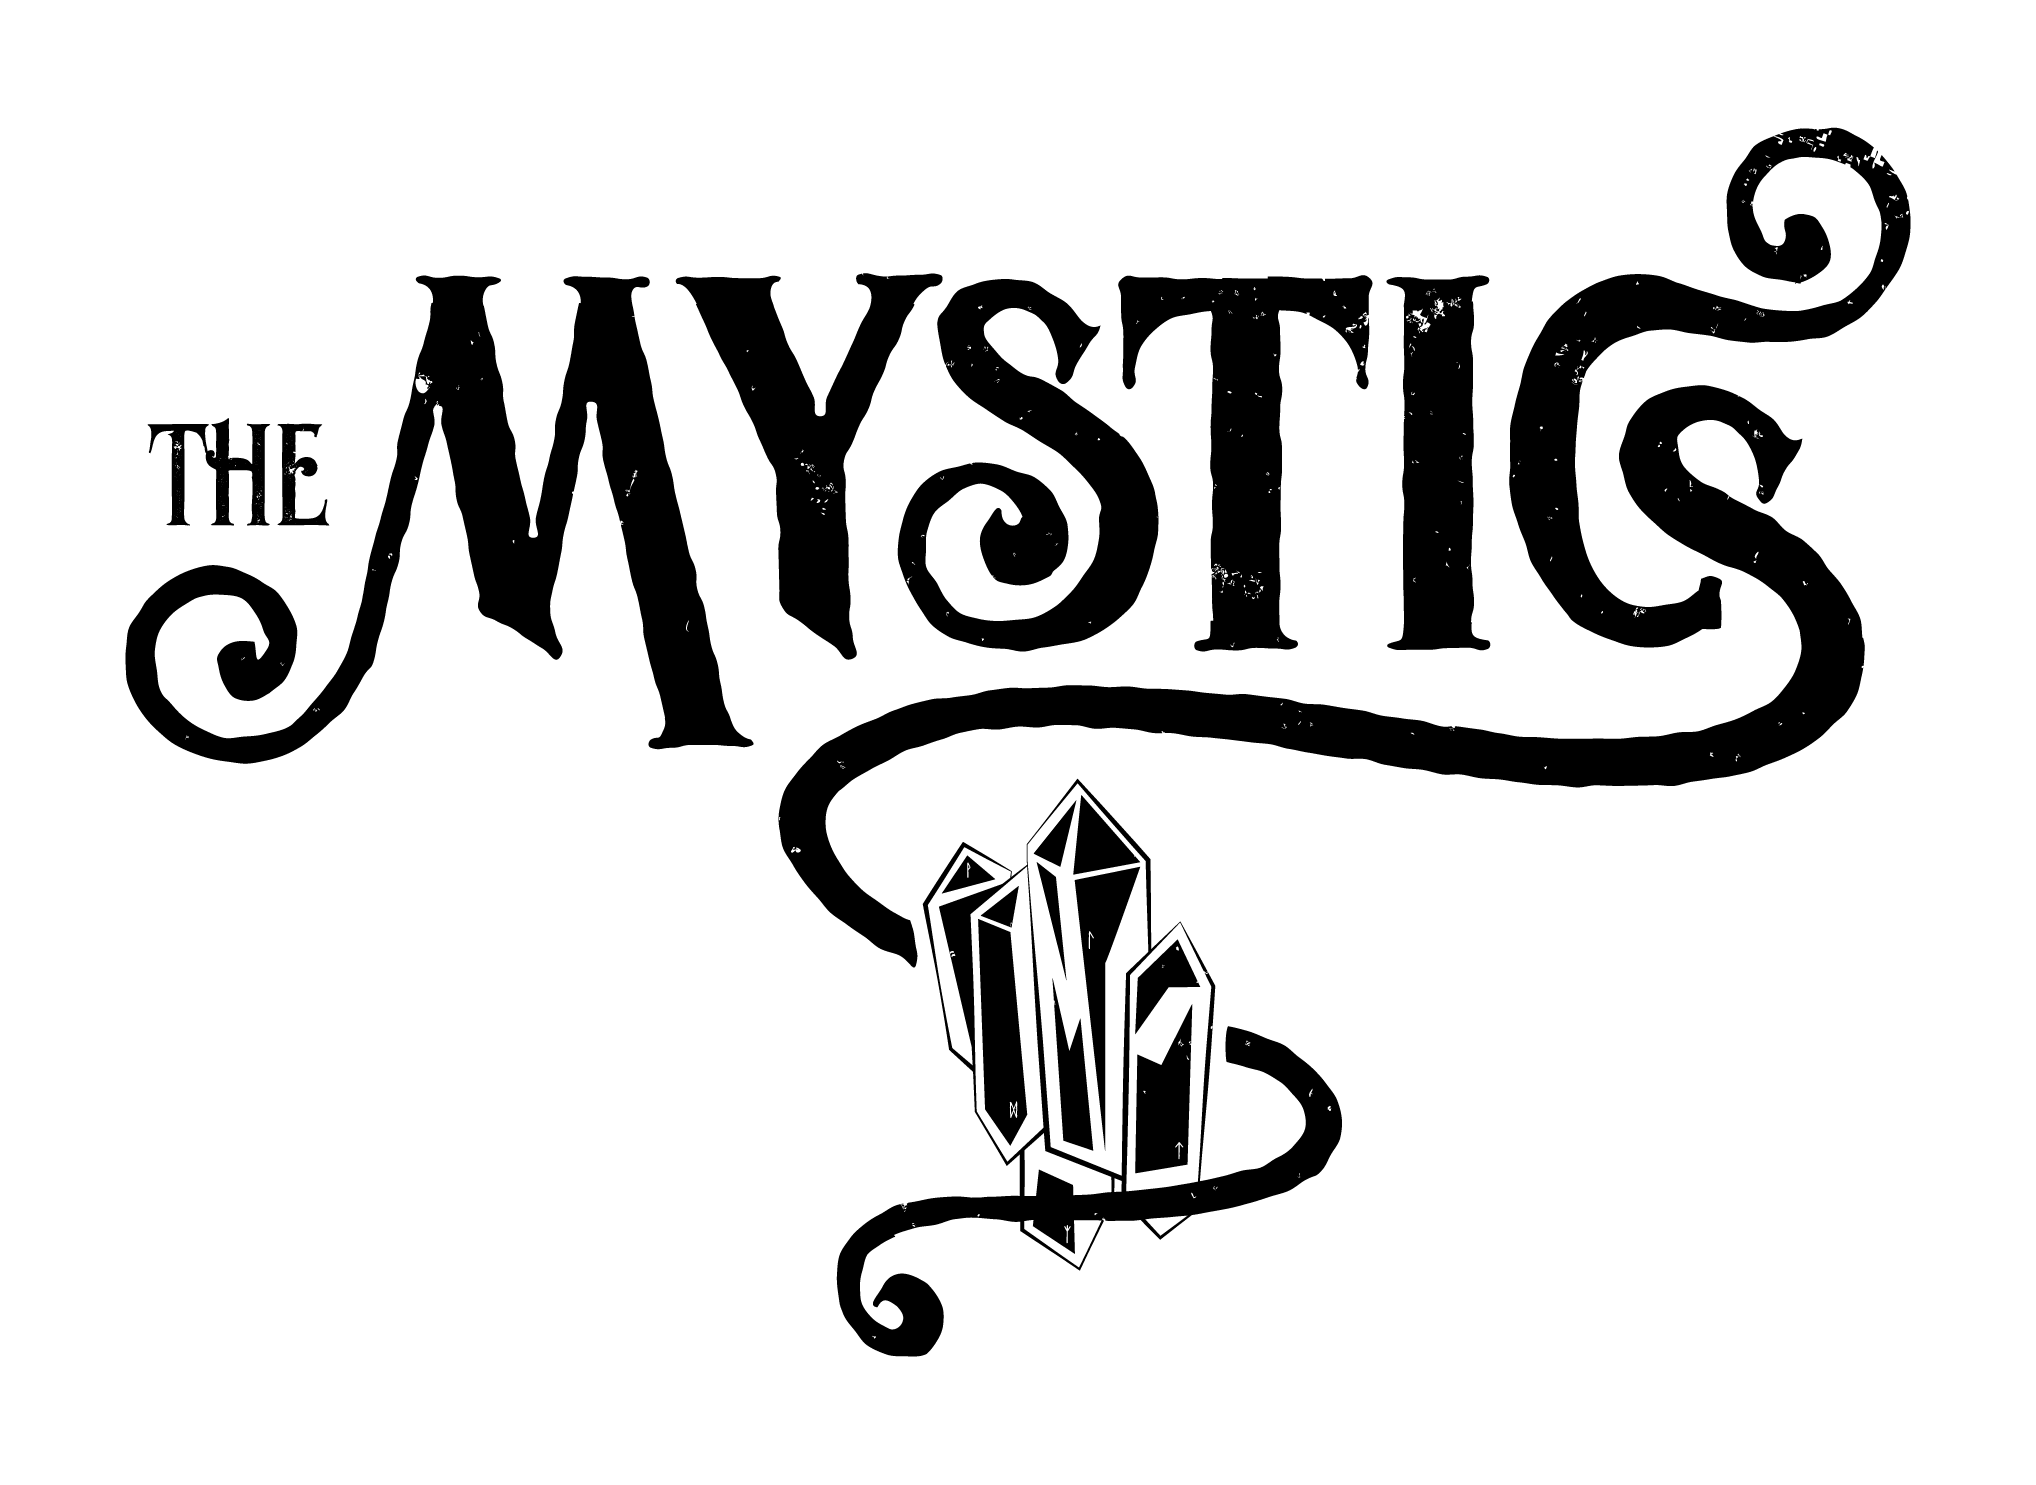 TheMystics_LG_FullTransparent_Black@2x.png